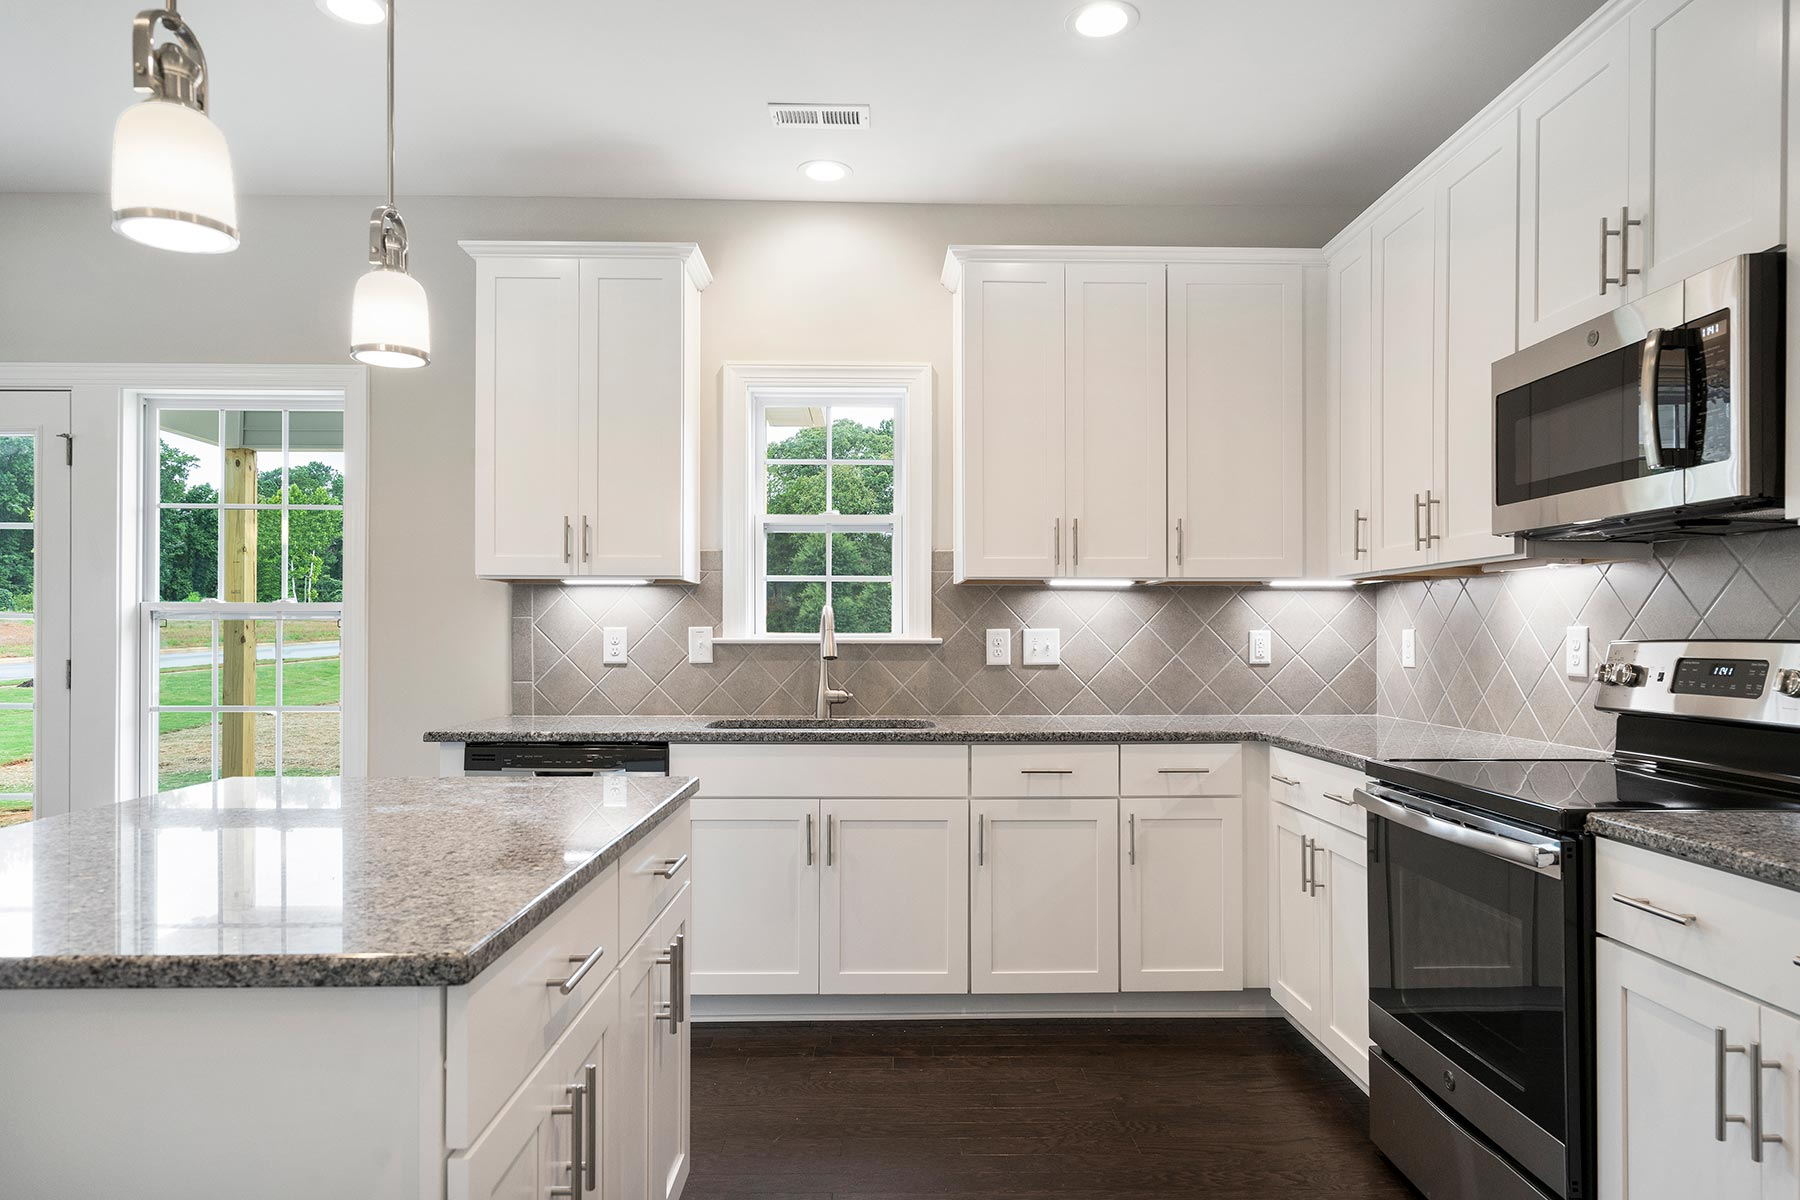 Sampson Plan Kitchen at Bristol in Clayton North Carolina by Mattamy Homes